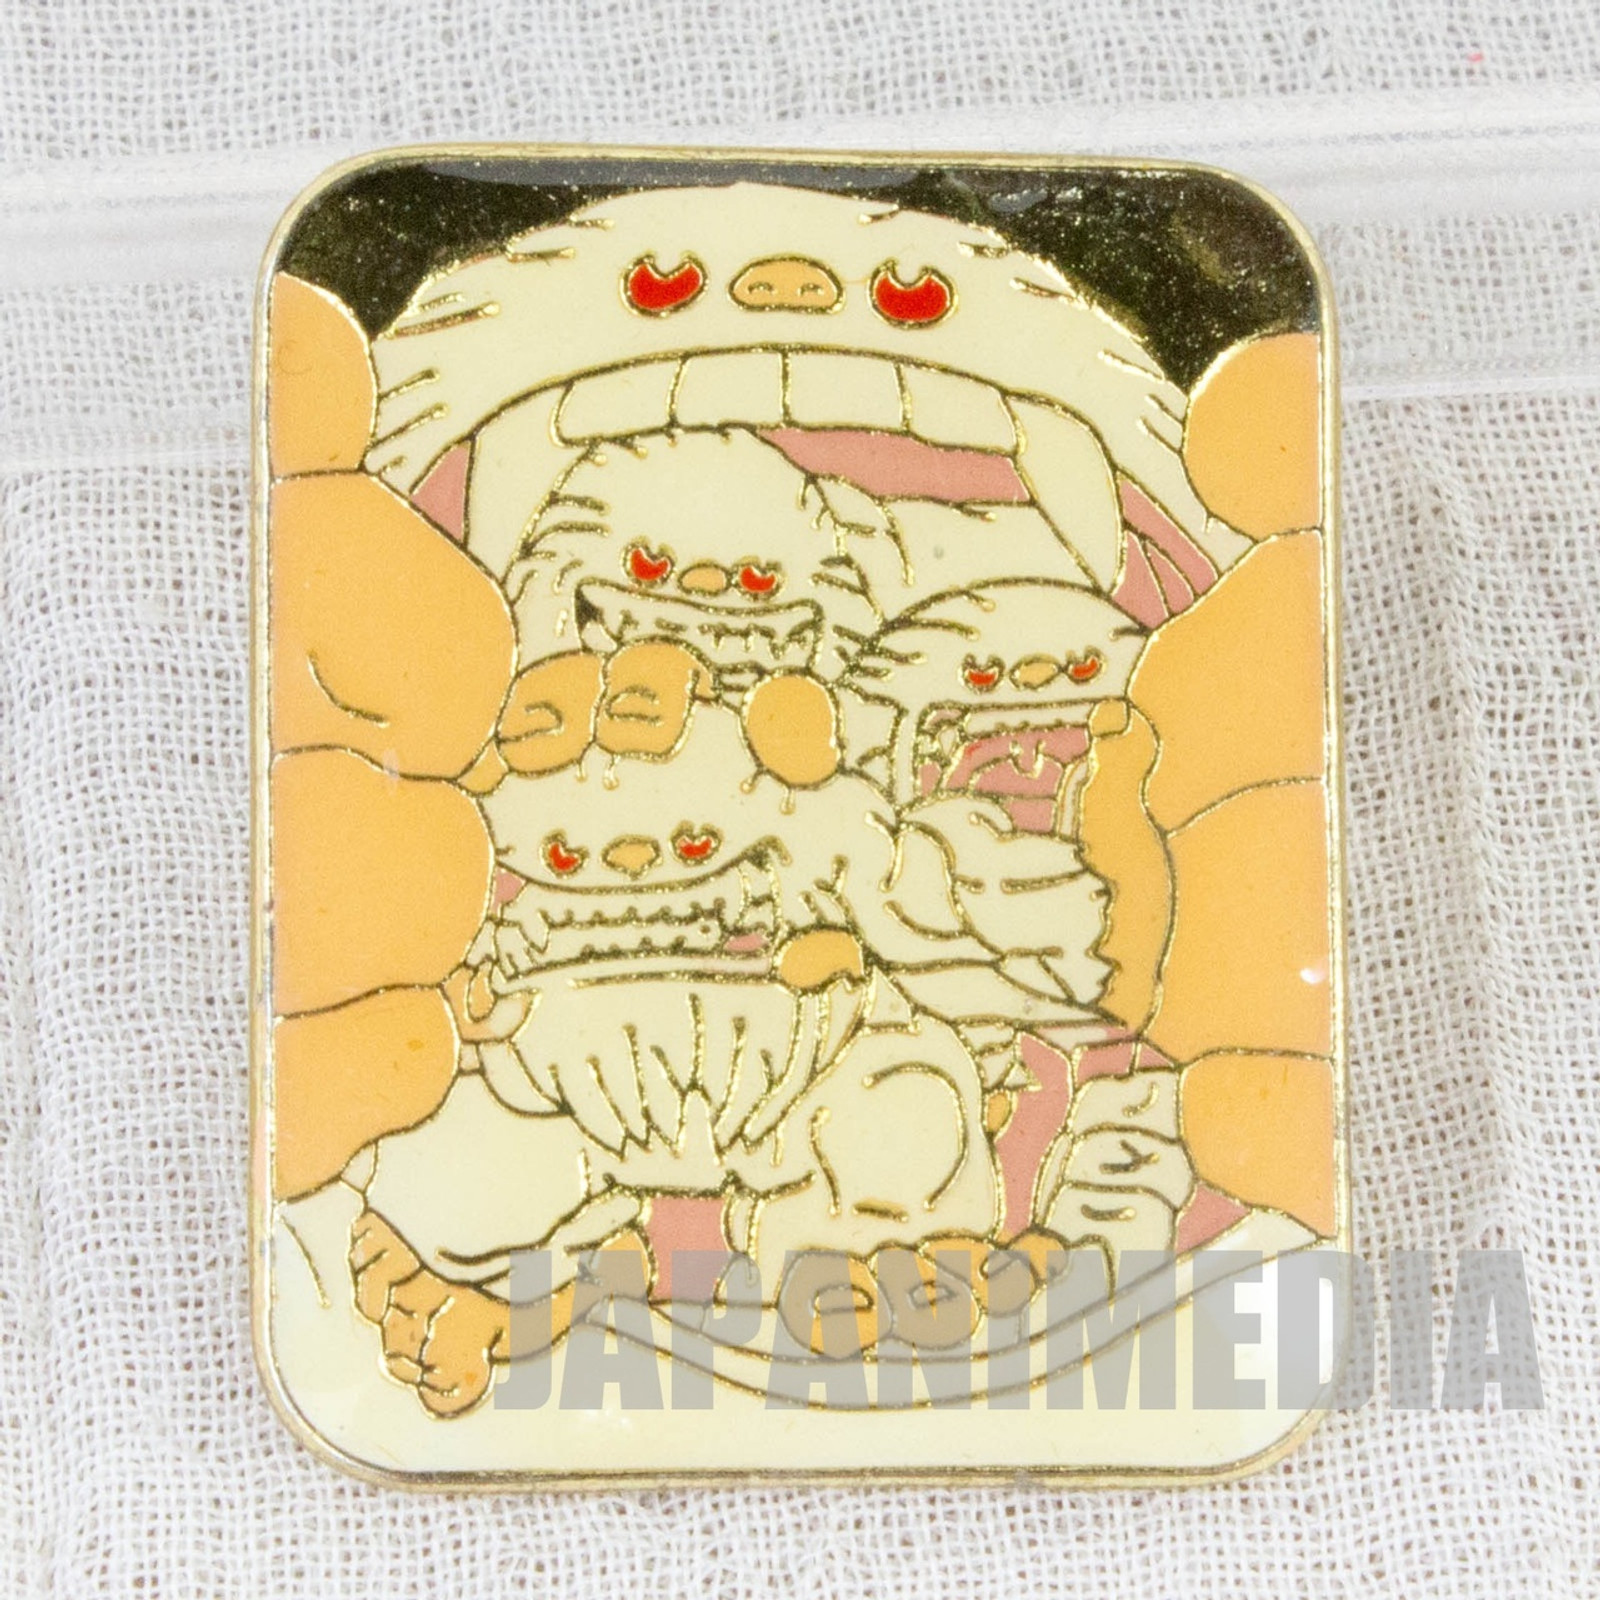 Darkstalkers (Vampire) Sasquatch Metal Pins Capcom Character JAPAN